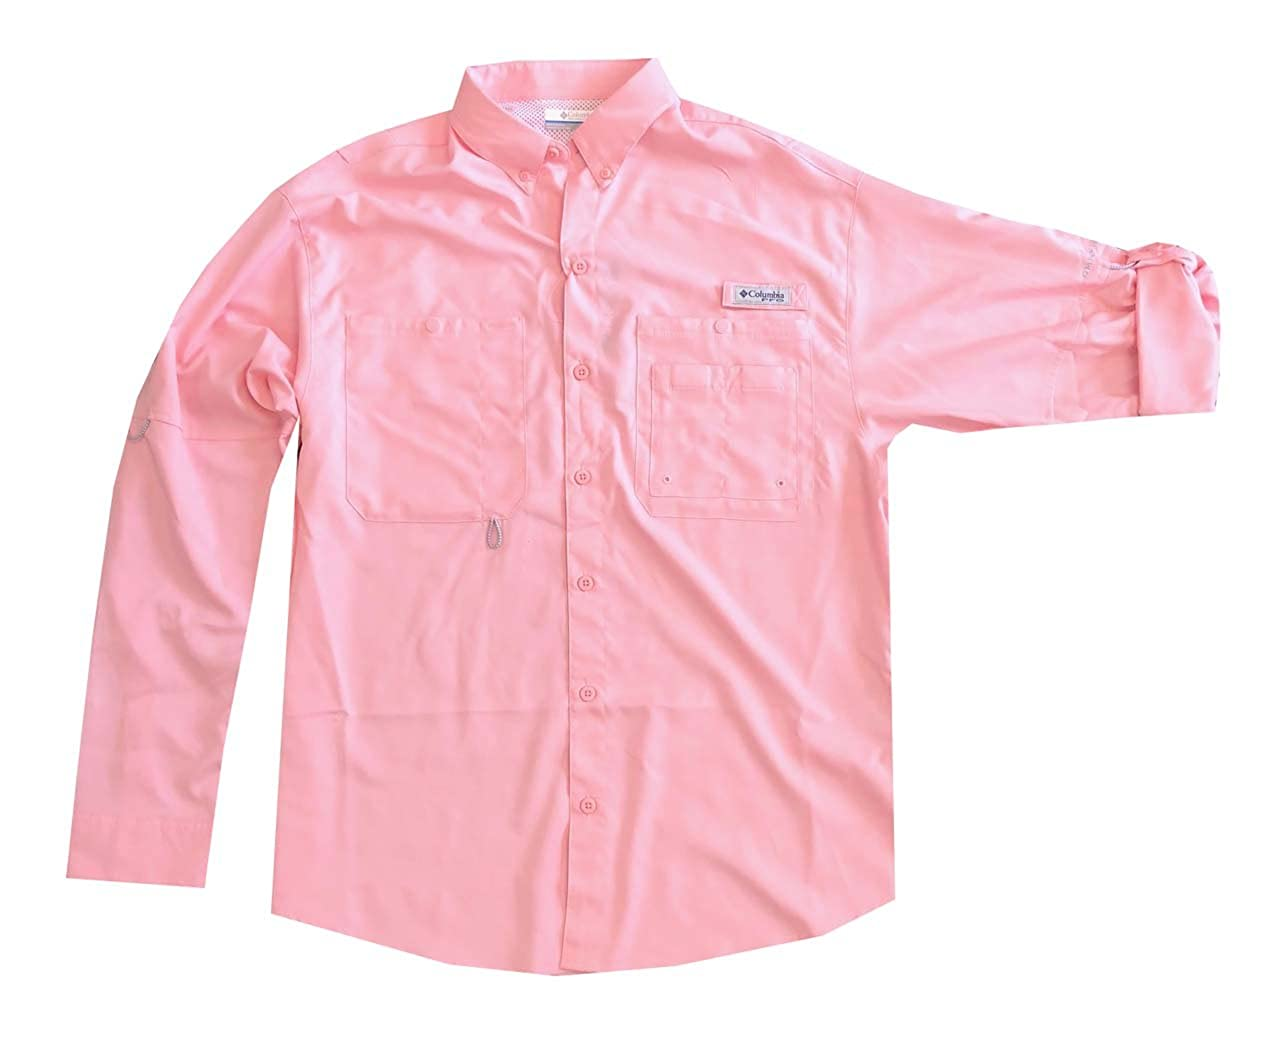 a159fc0acdd Columbia Men's PFG Omni-Wick Omni-Shade UPF 40 Crystal Springs Convertible Sleeve  Shirt at Amazon Men's Clothing store: